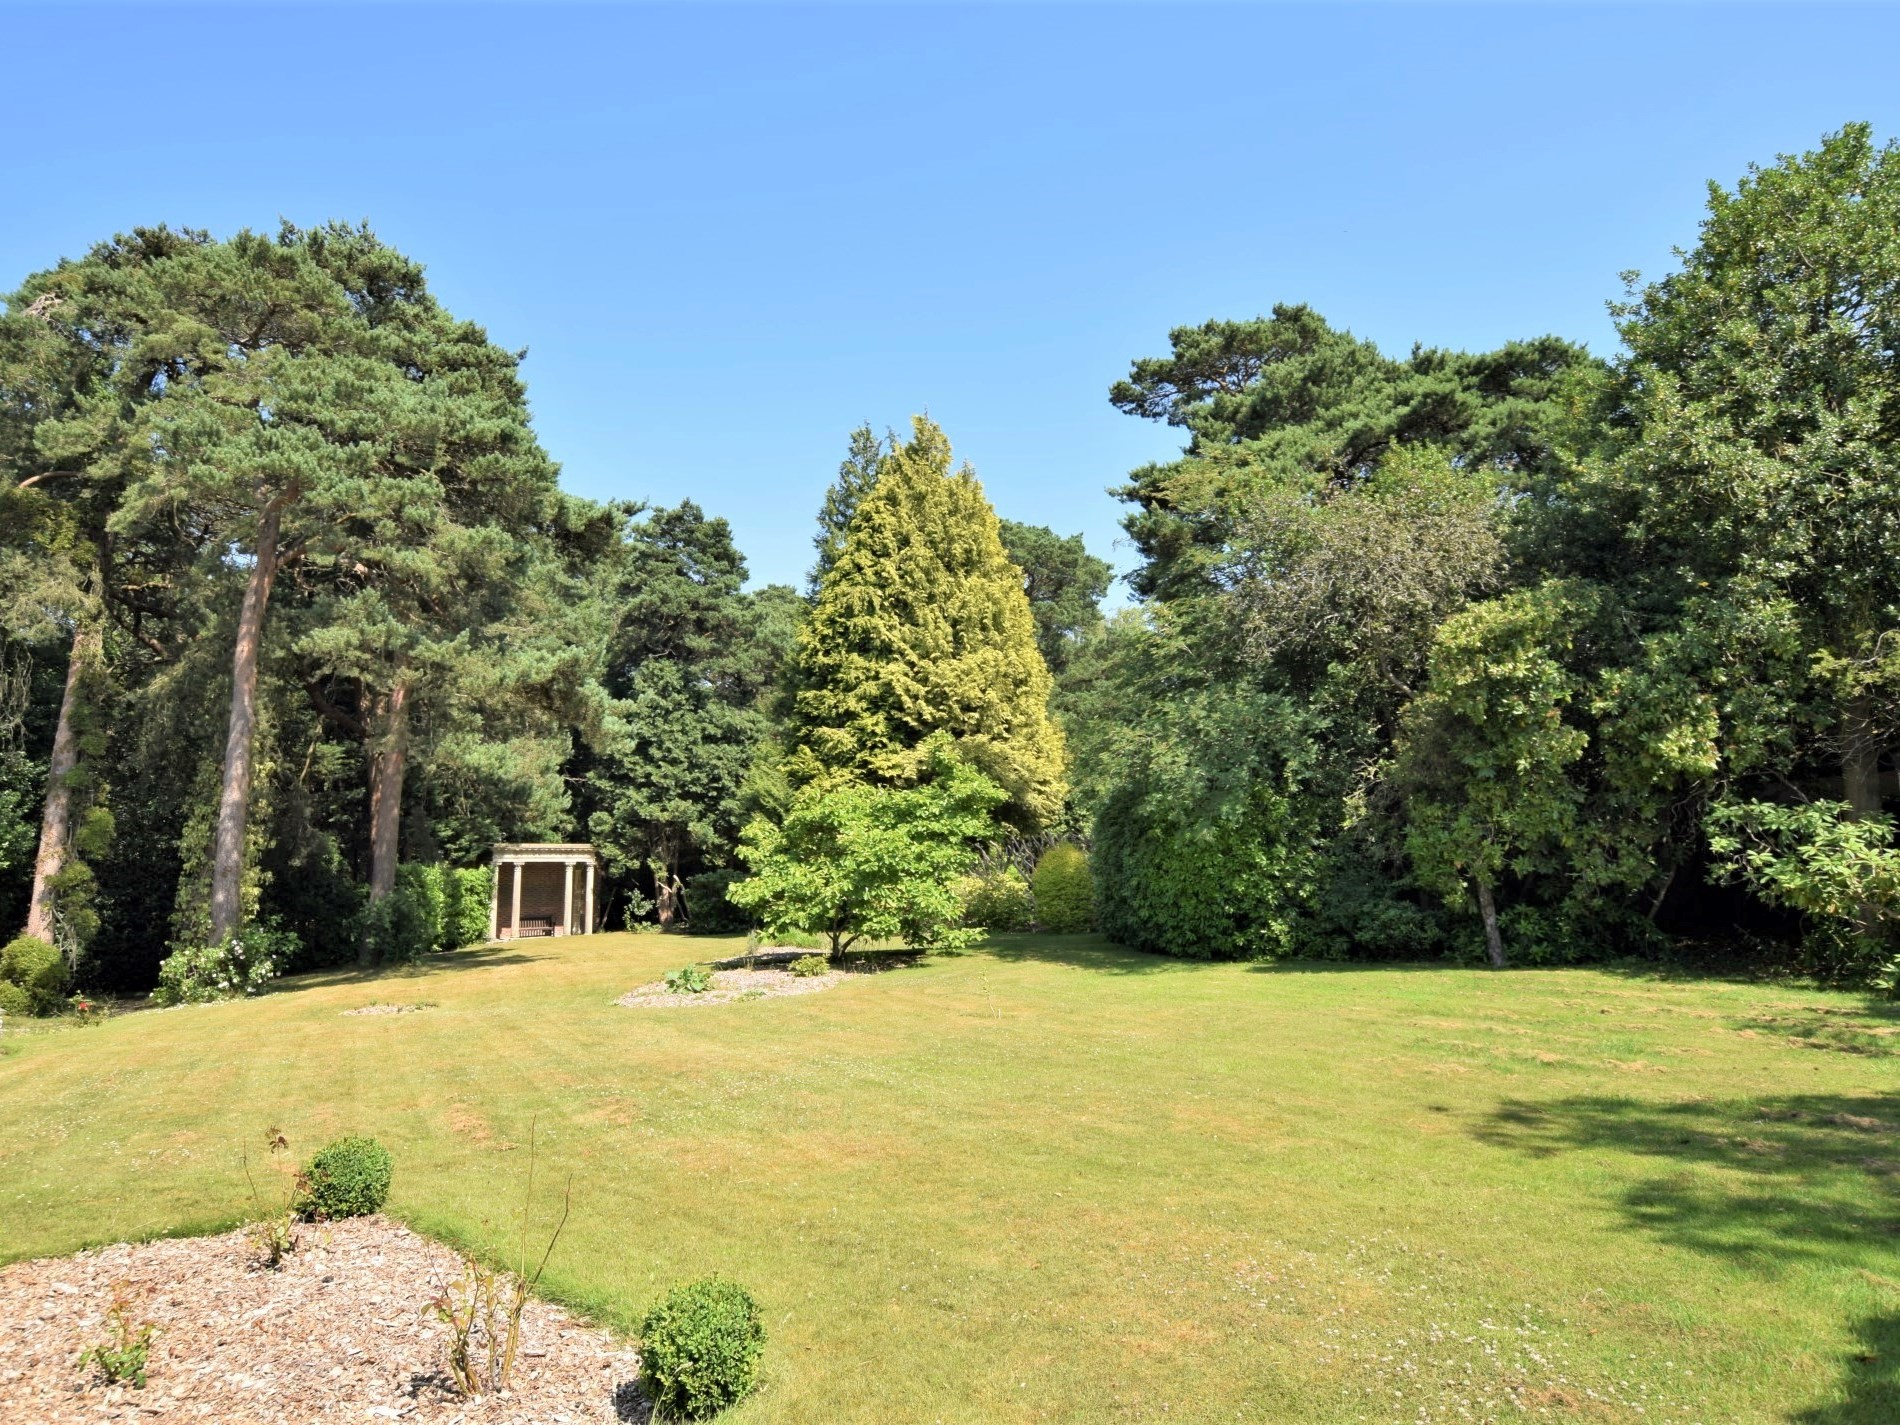 Relax in the enclosed gardens edged with woodland